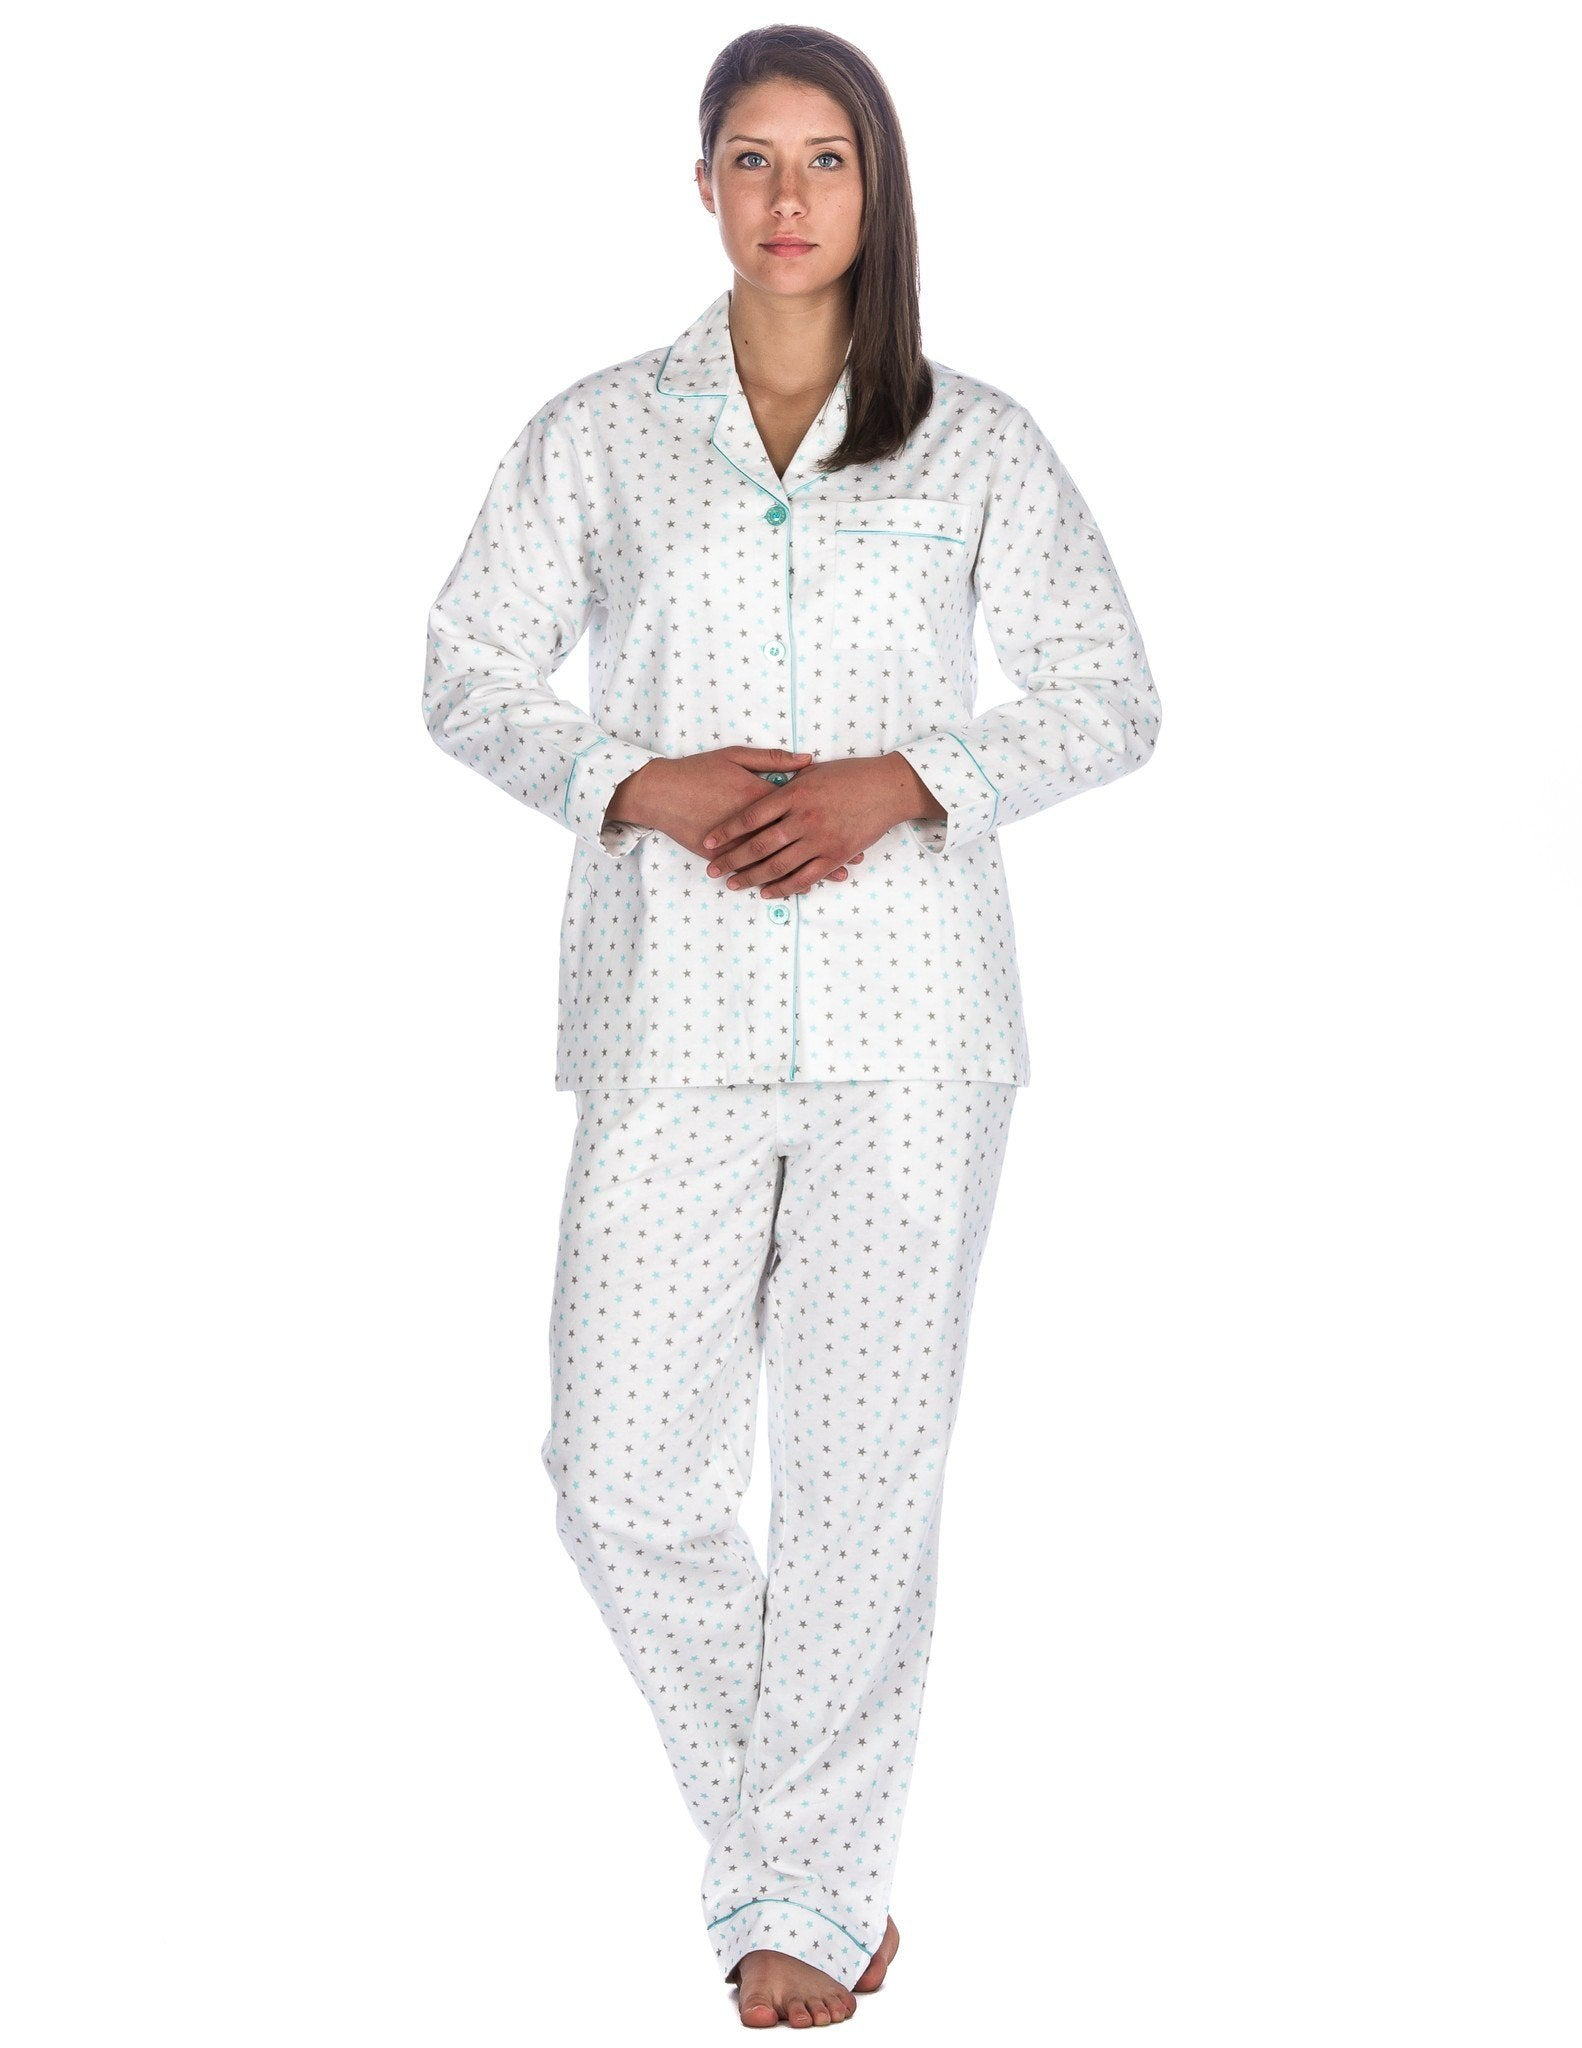 Realxed Fit Womens 100% Cotton Flannel Pajama Sleepwear Set - Stars White